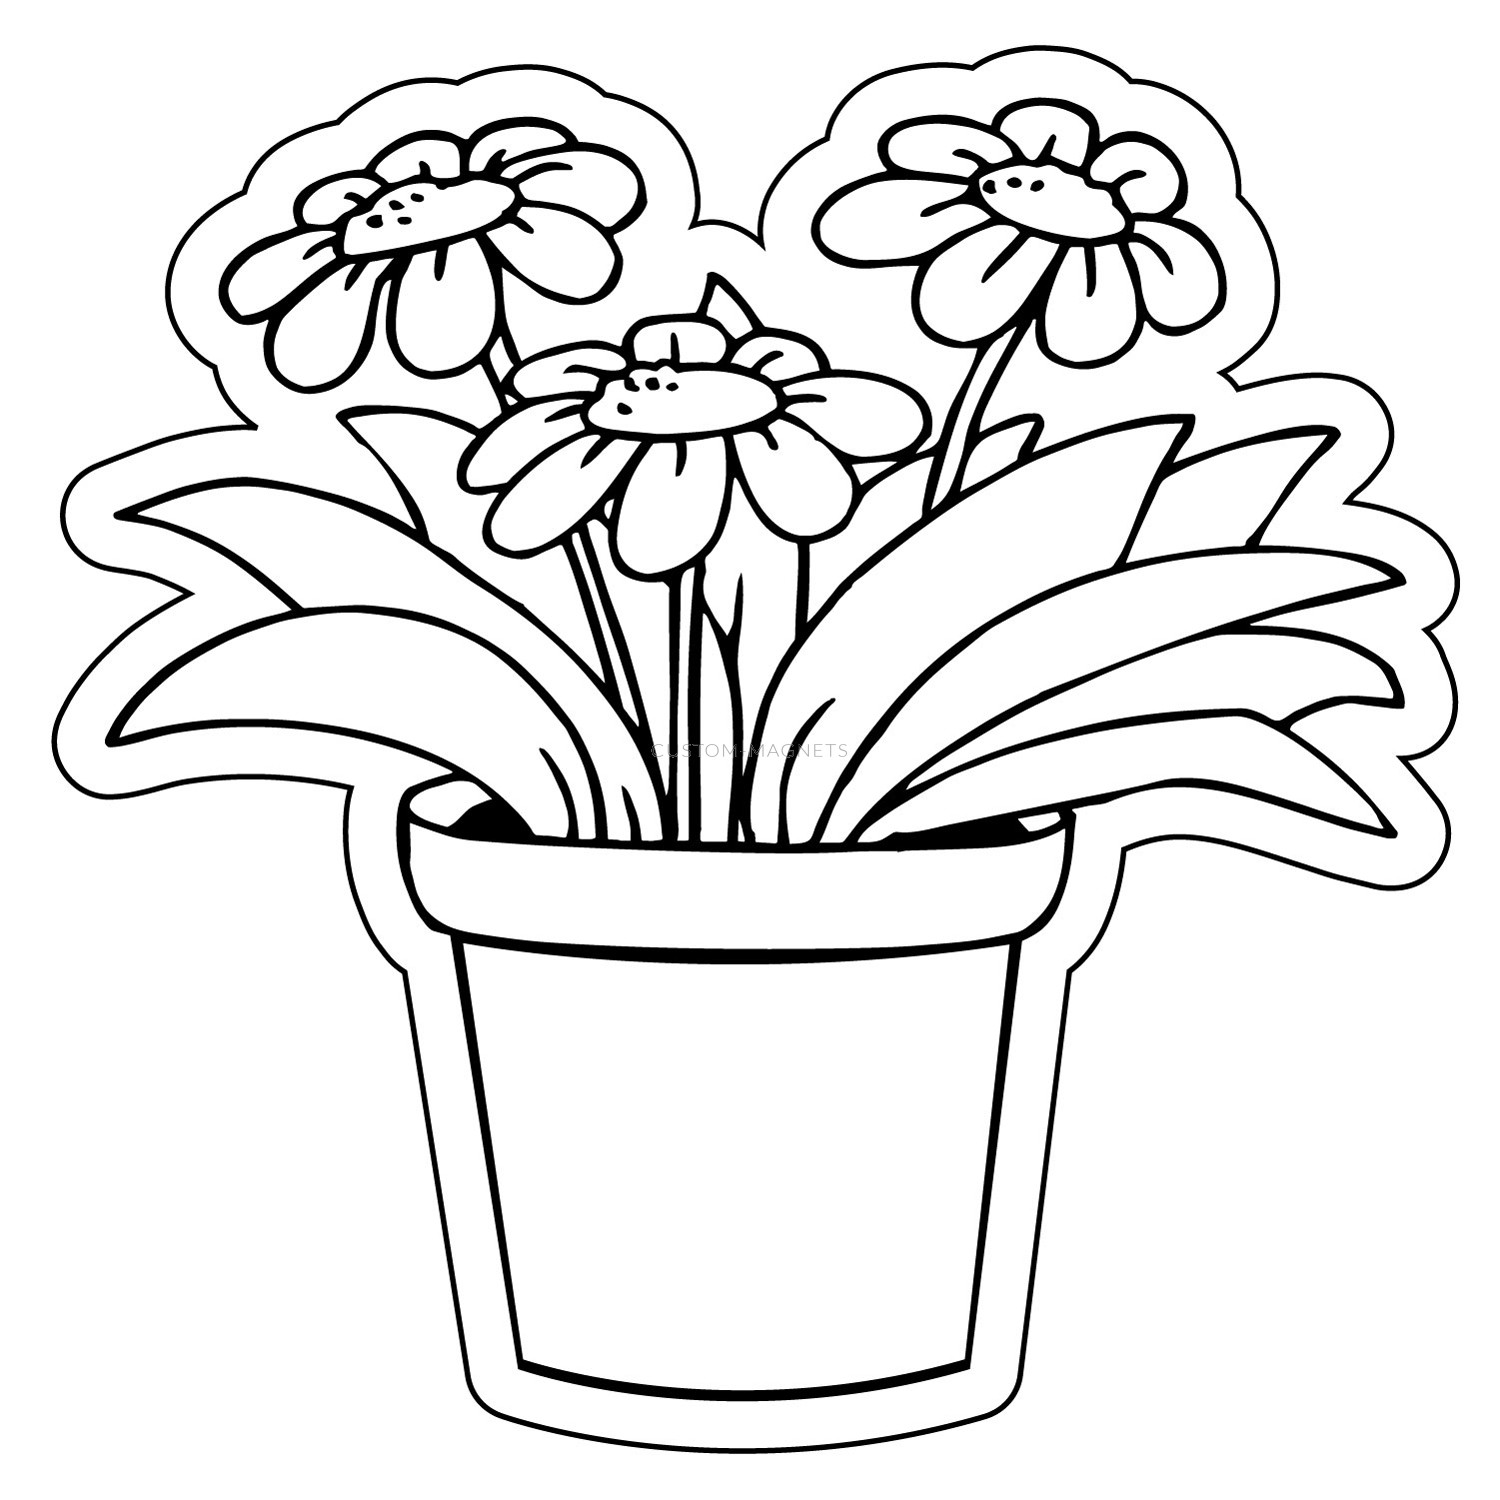 Black and white flower pots - Black And White Flower Pots 38